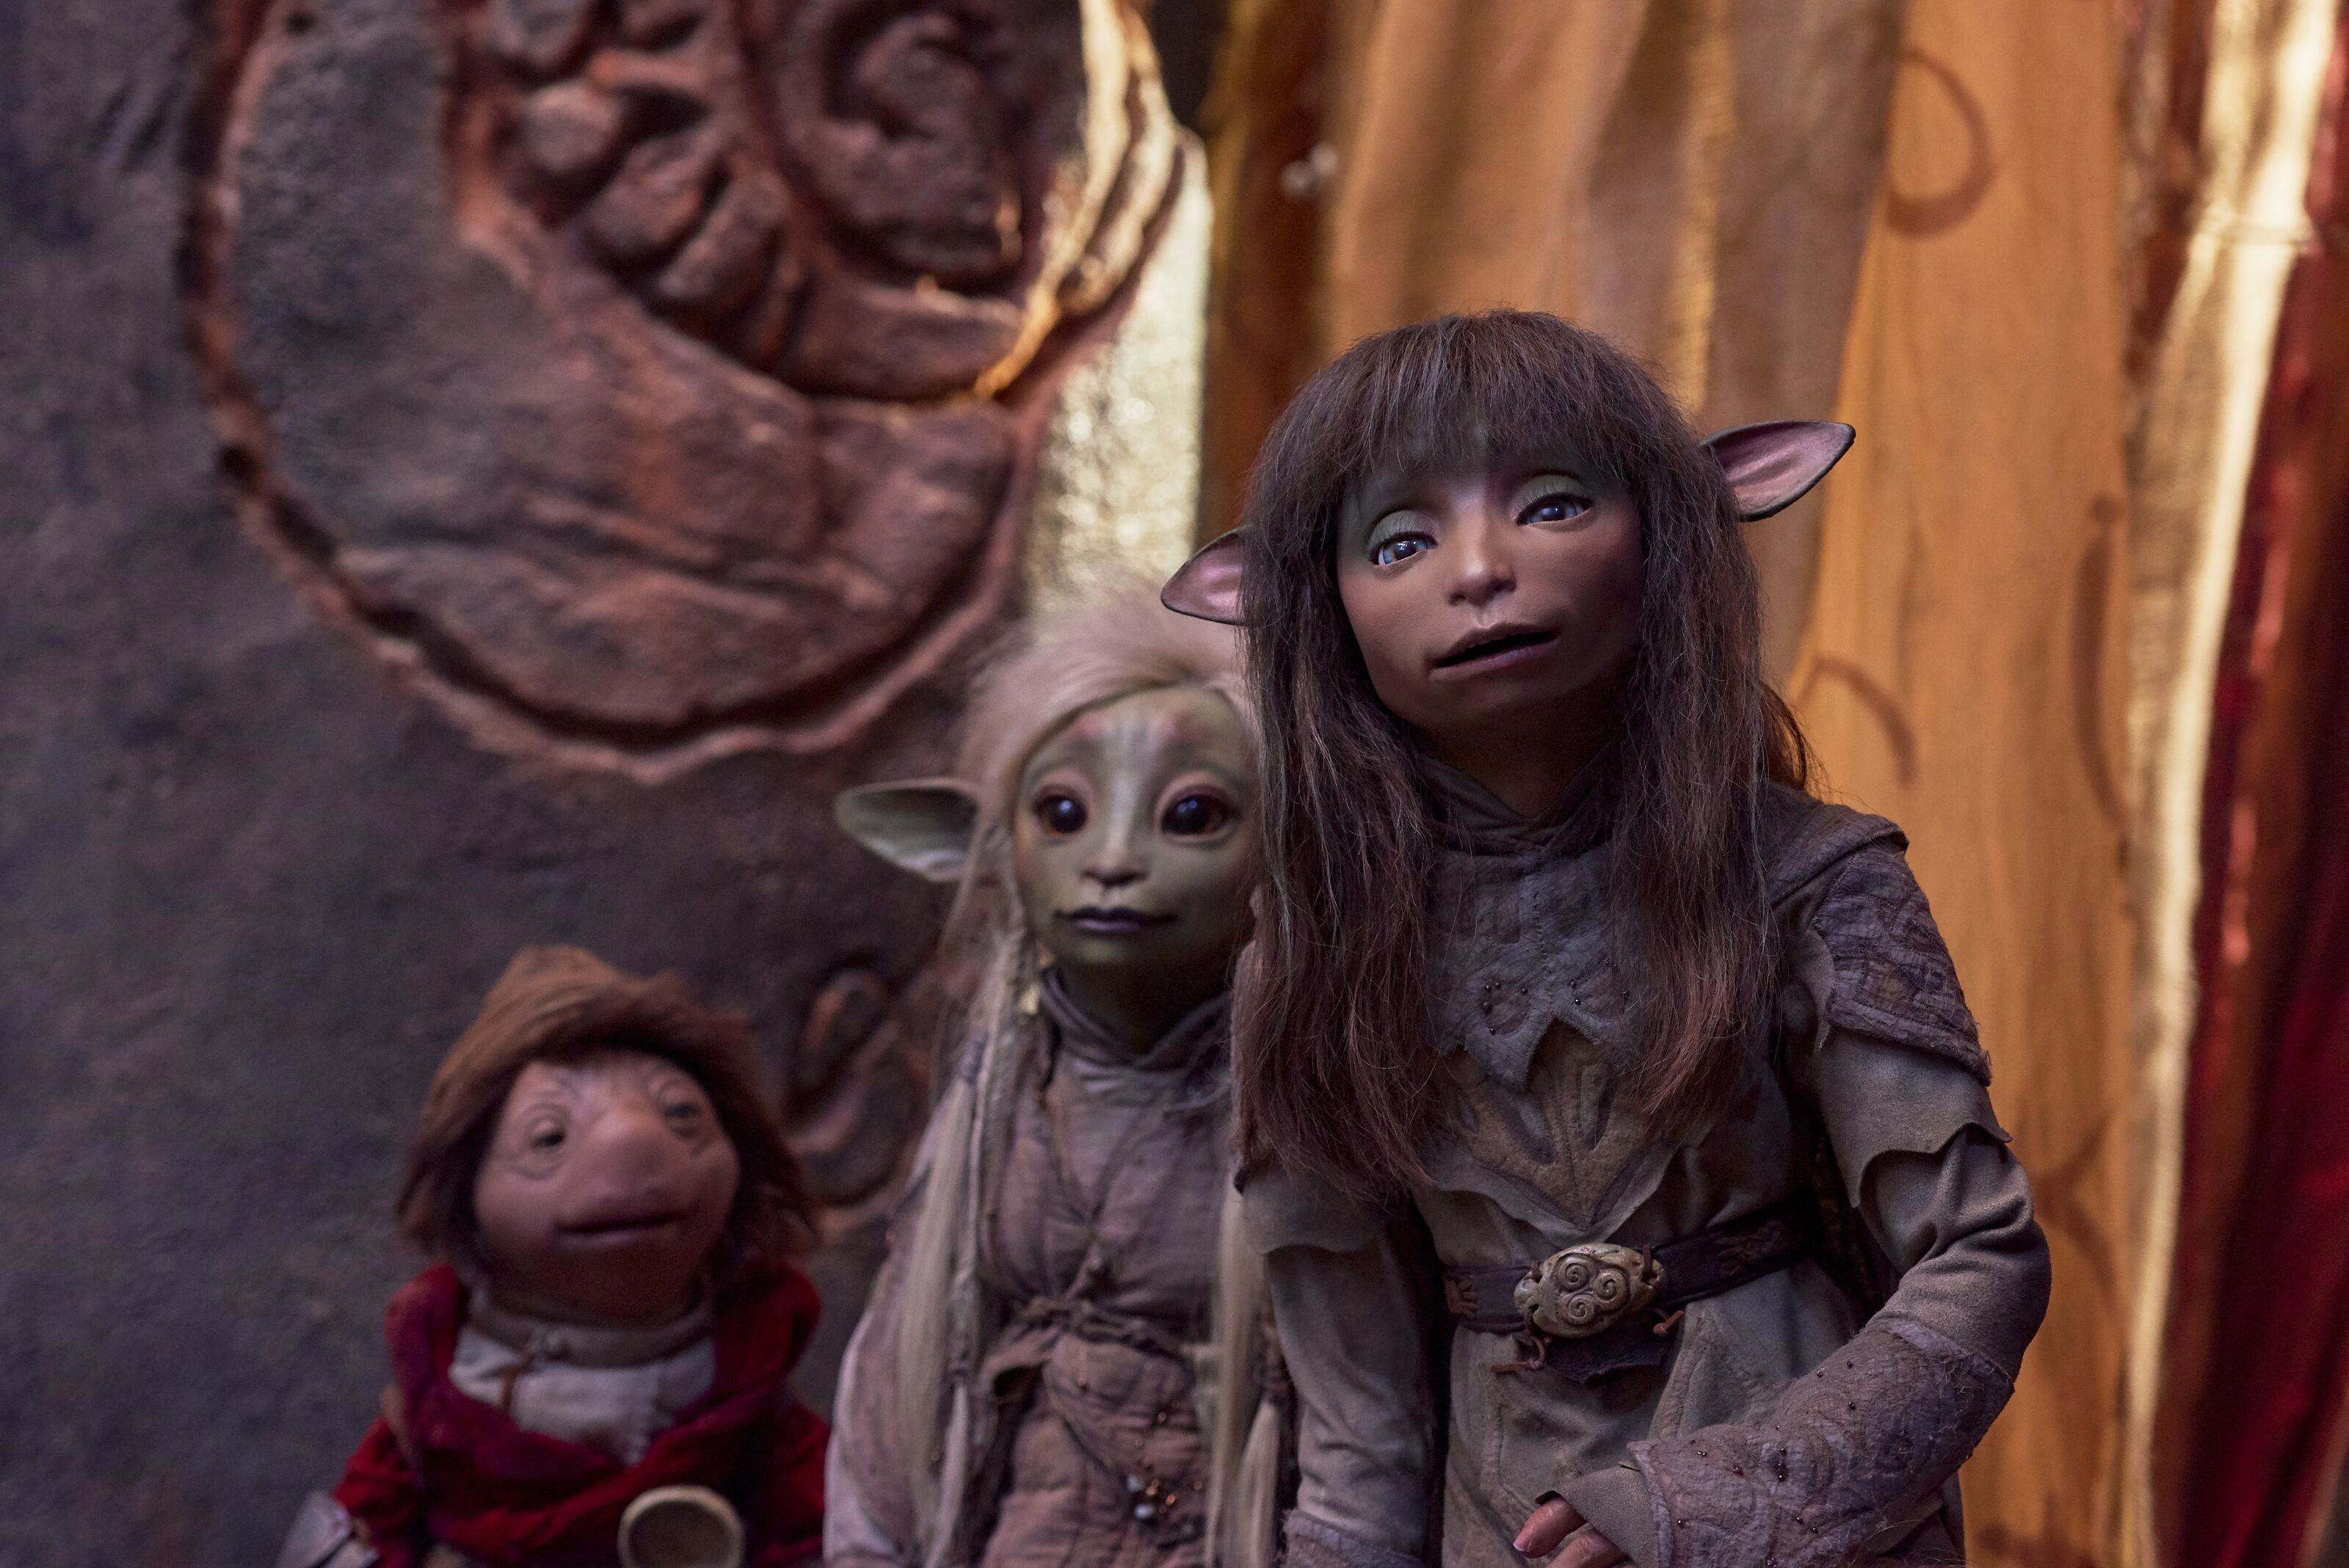 Dark Crystal: Age of Resistance: The premiere ignites the sparks of rebellion